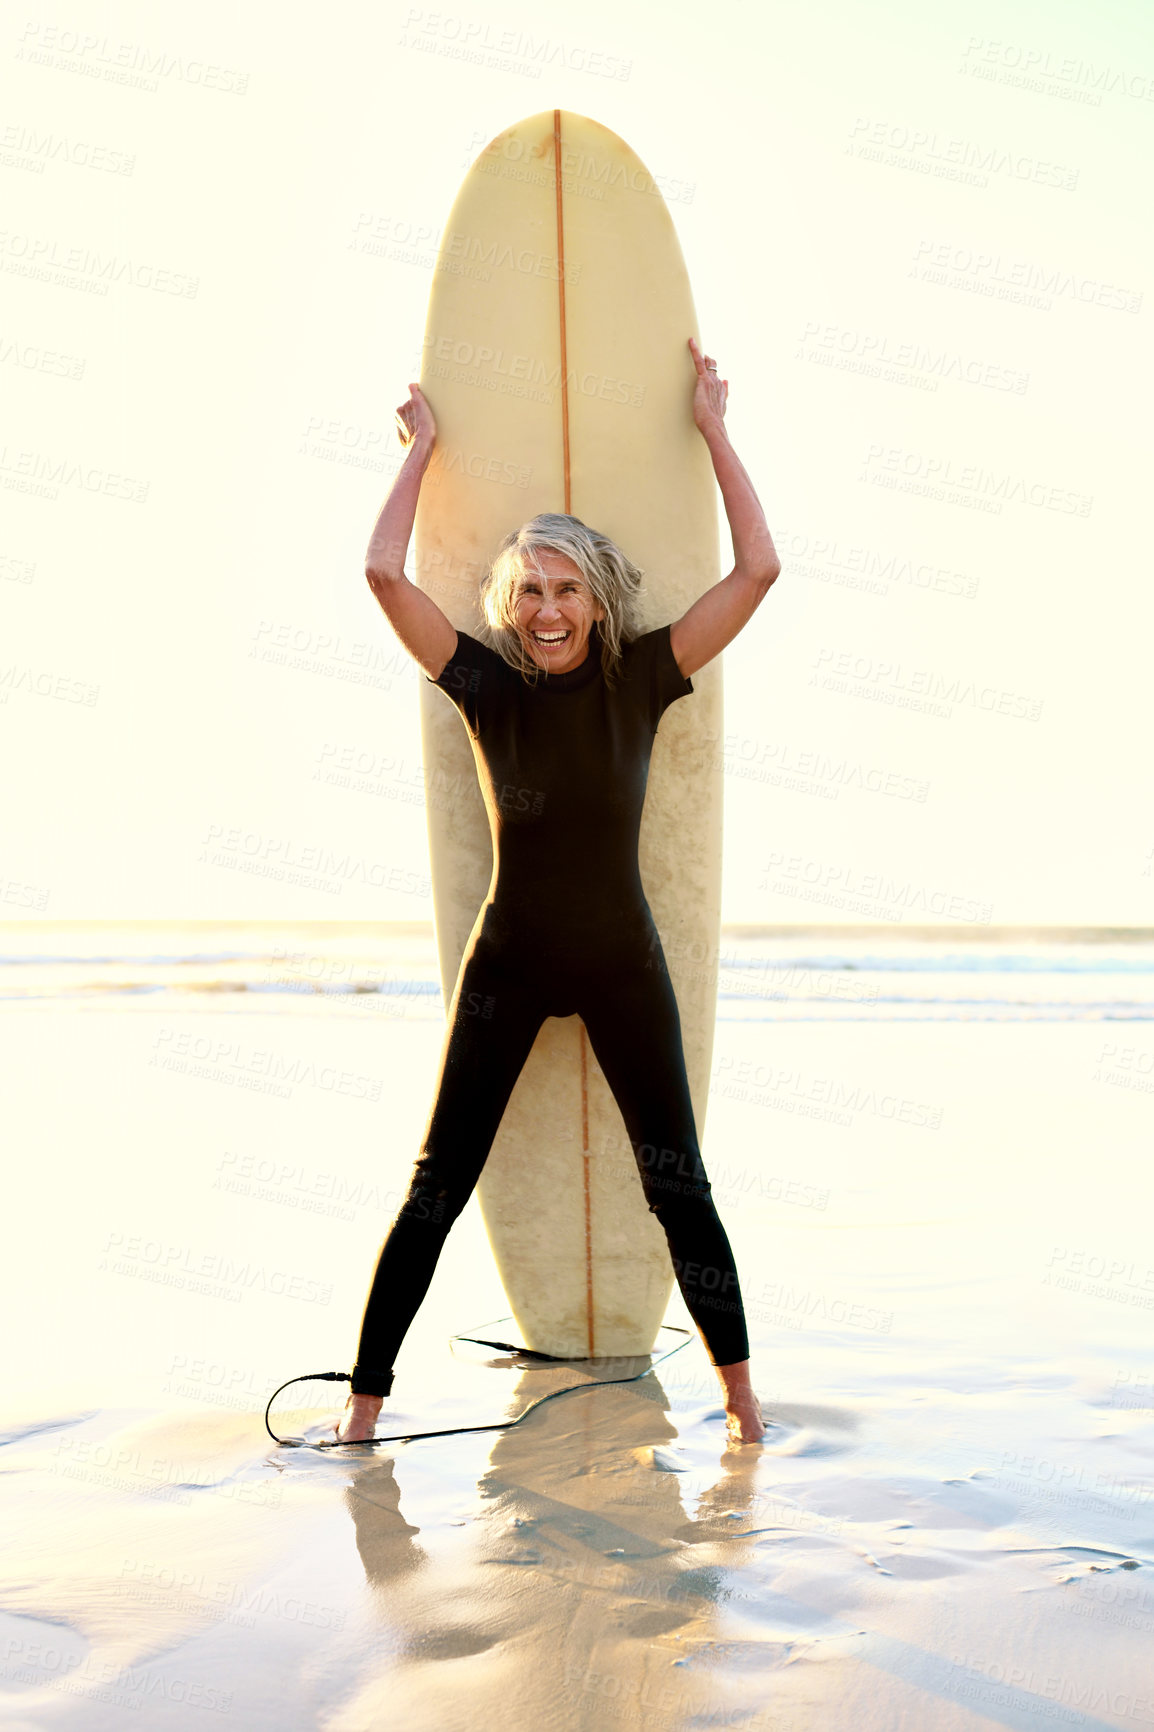 Buy stock photo Full length portrtait of a happy senior woman standing and posing with her surfboard while on the beach